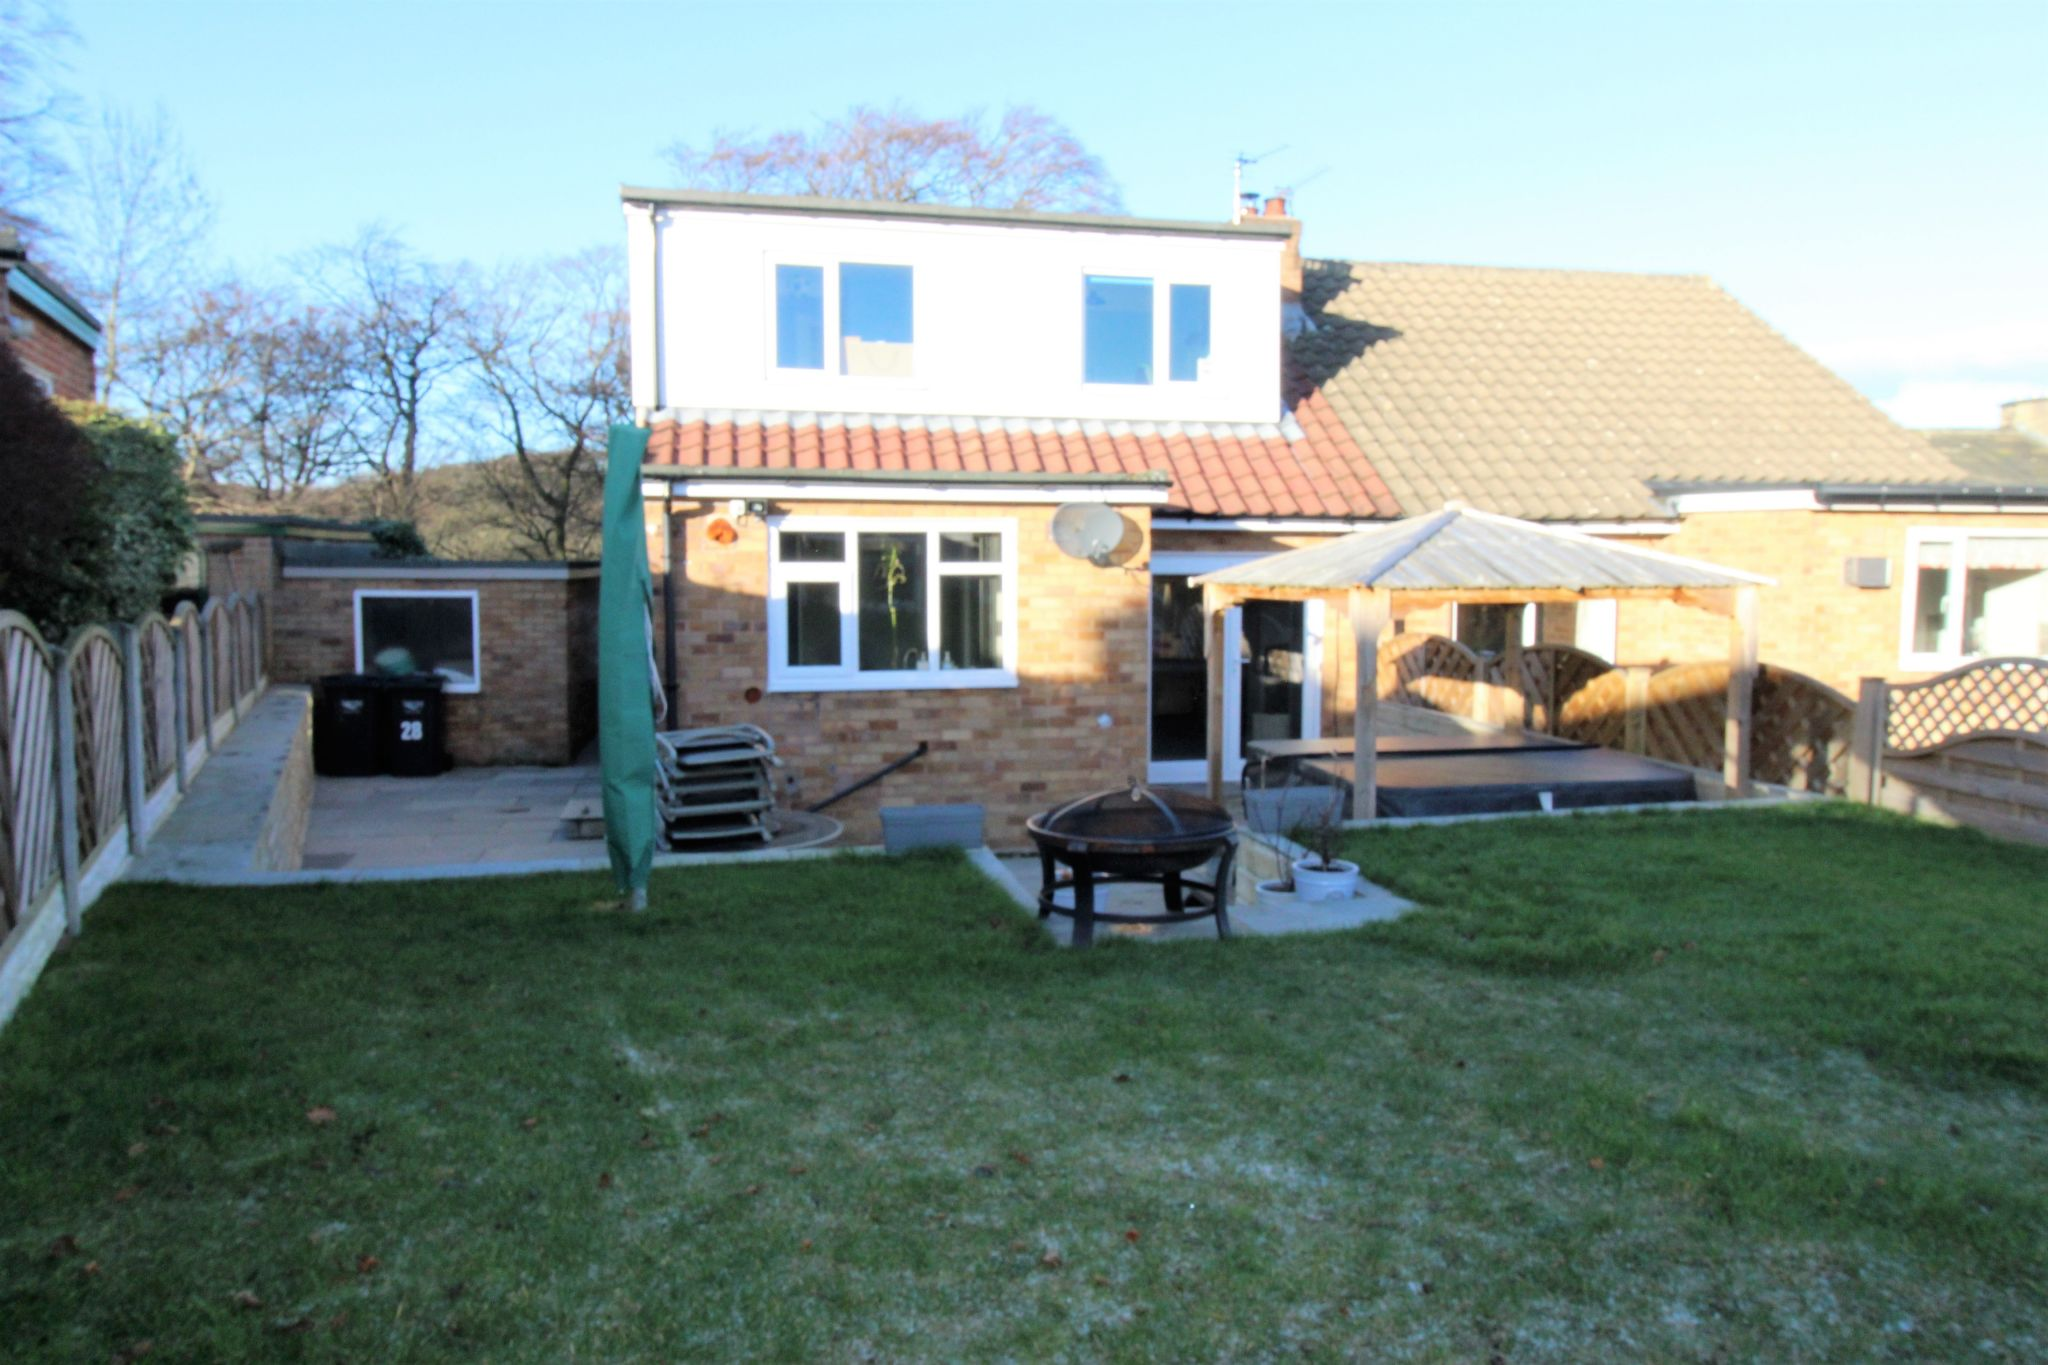 4 bedroom semi-detached bungalow SSTC in Brighouse - Rear aspect